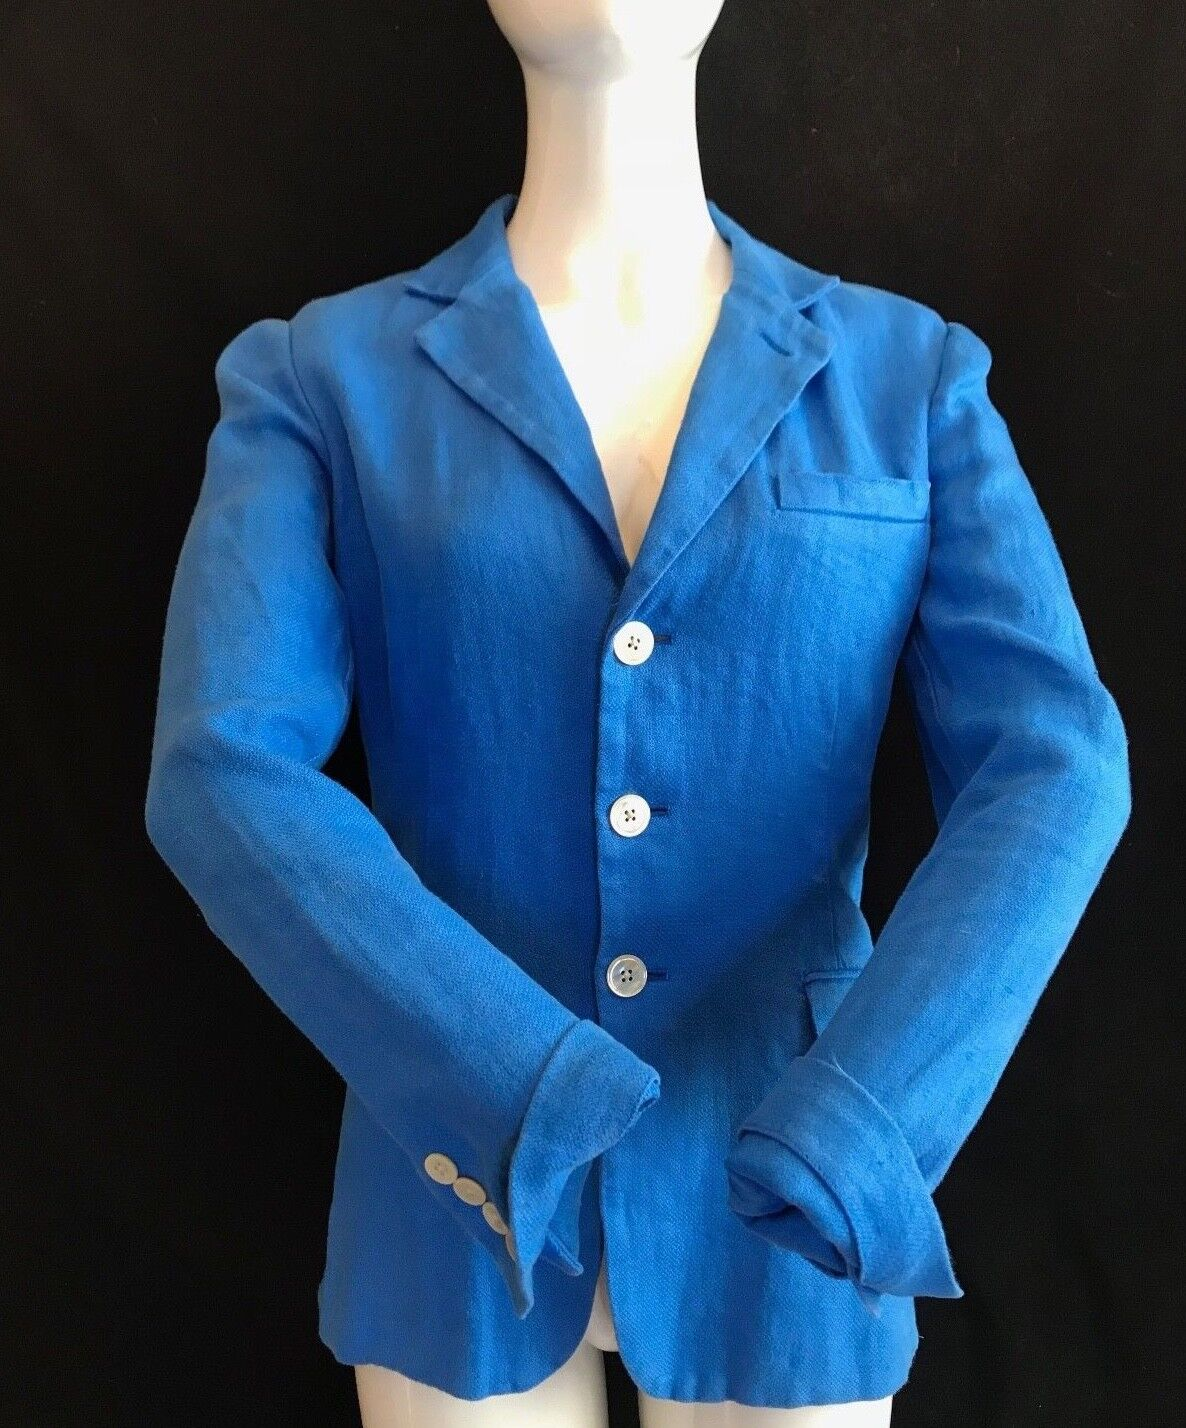 BNWT POLO RALPH LAUREN Ladies Corsican bluee 100% Cotton Blazer UK14 RRP